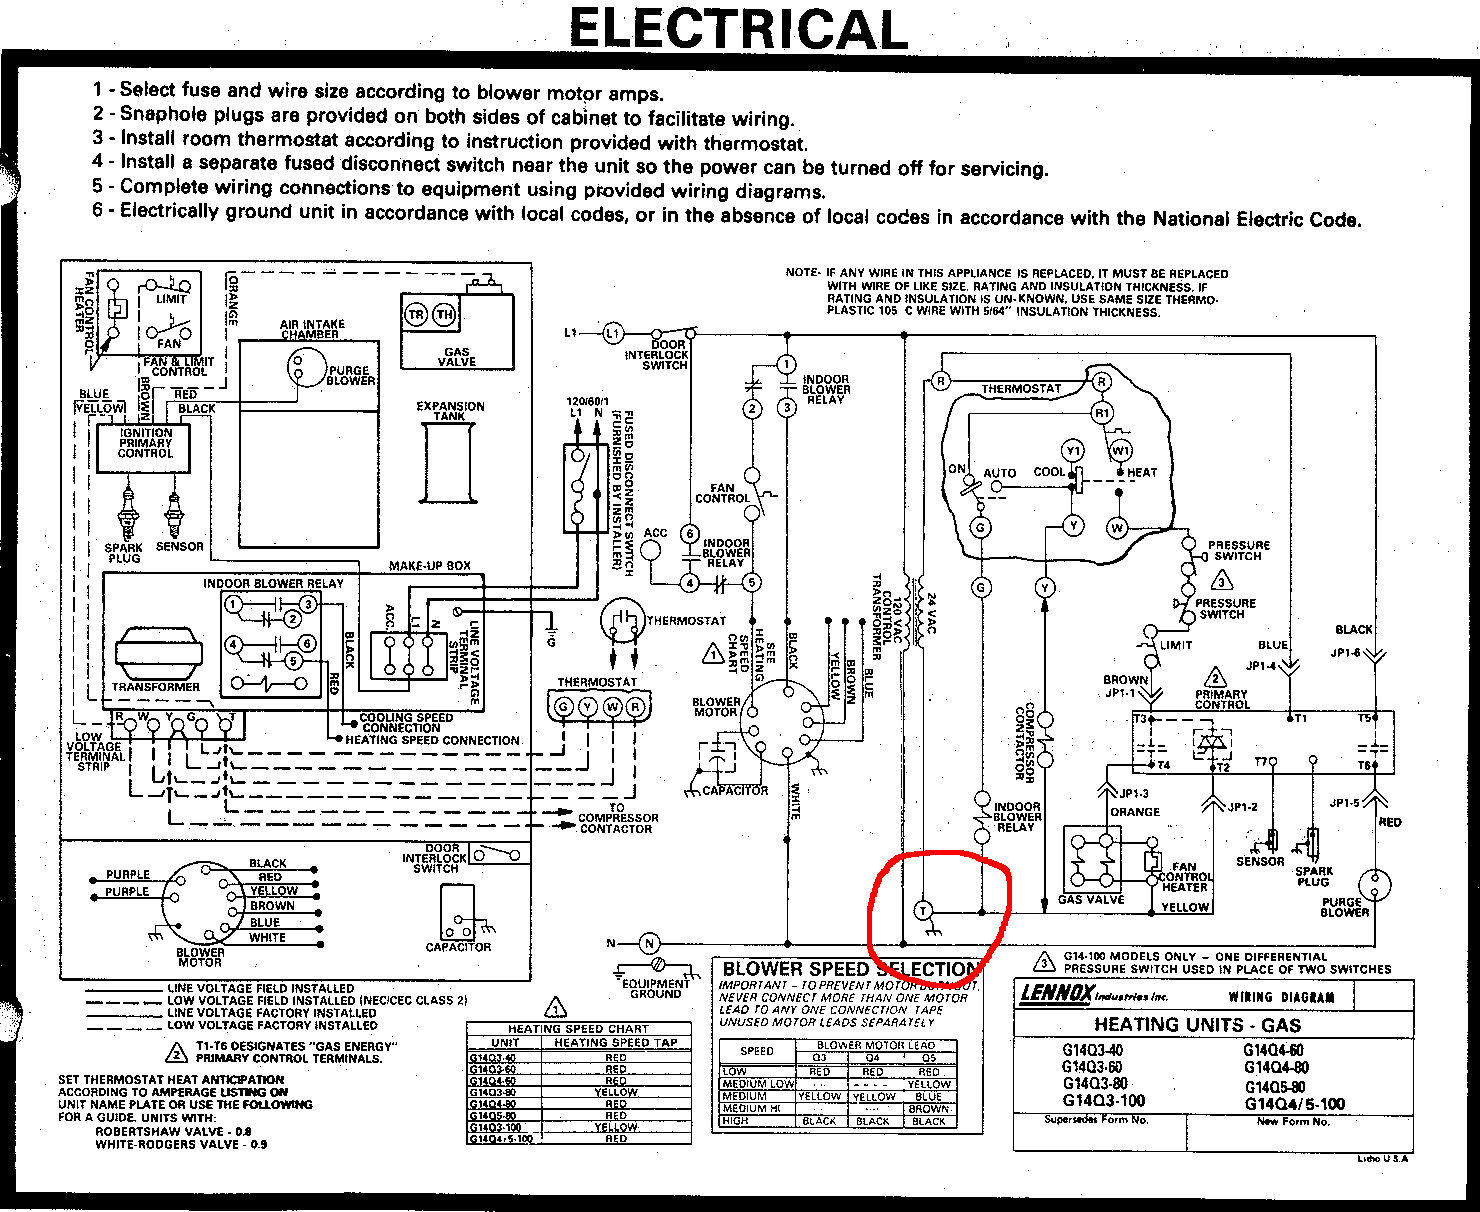 white rodgers 24a01g 3 wiring diagram Collection-Lennox Furnace Thermostat Wiring Diagram Collection Wiring Diagram White rodgers 24a01g 3 wiring diagram 10-l